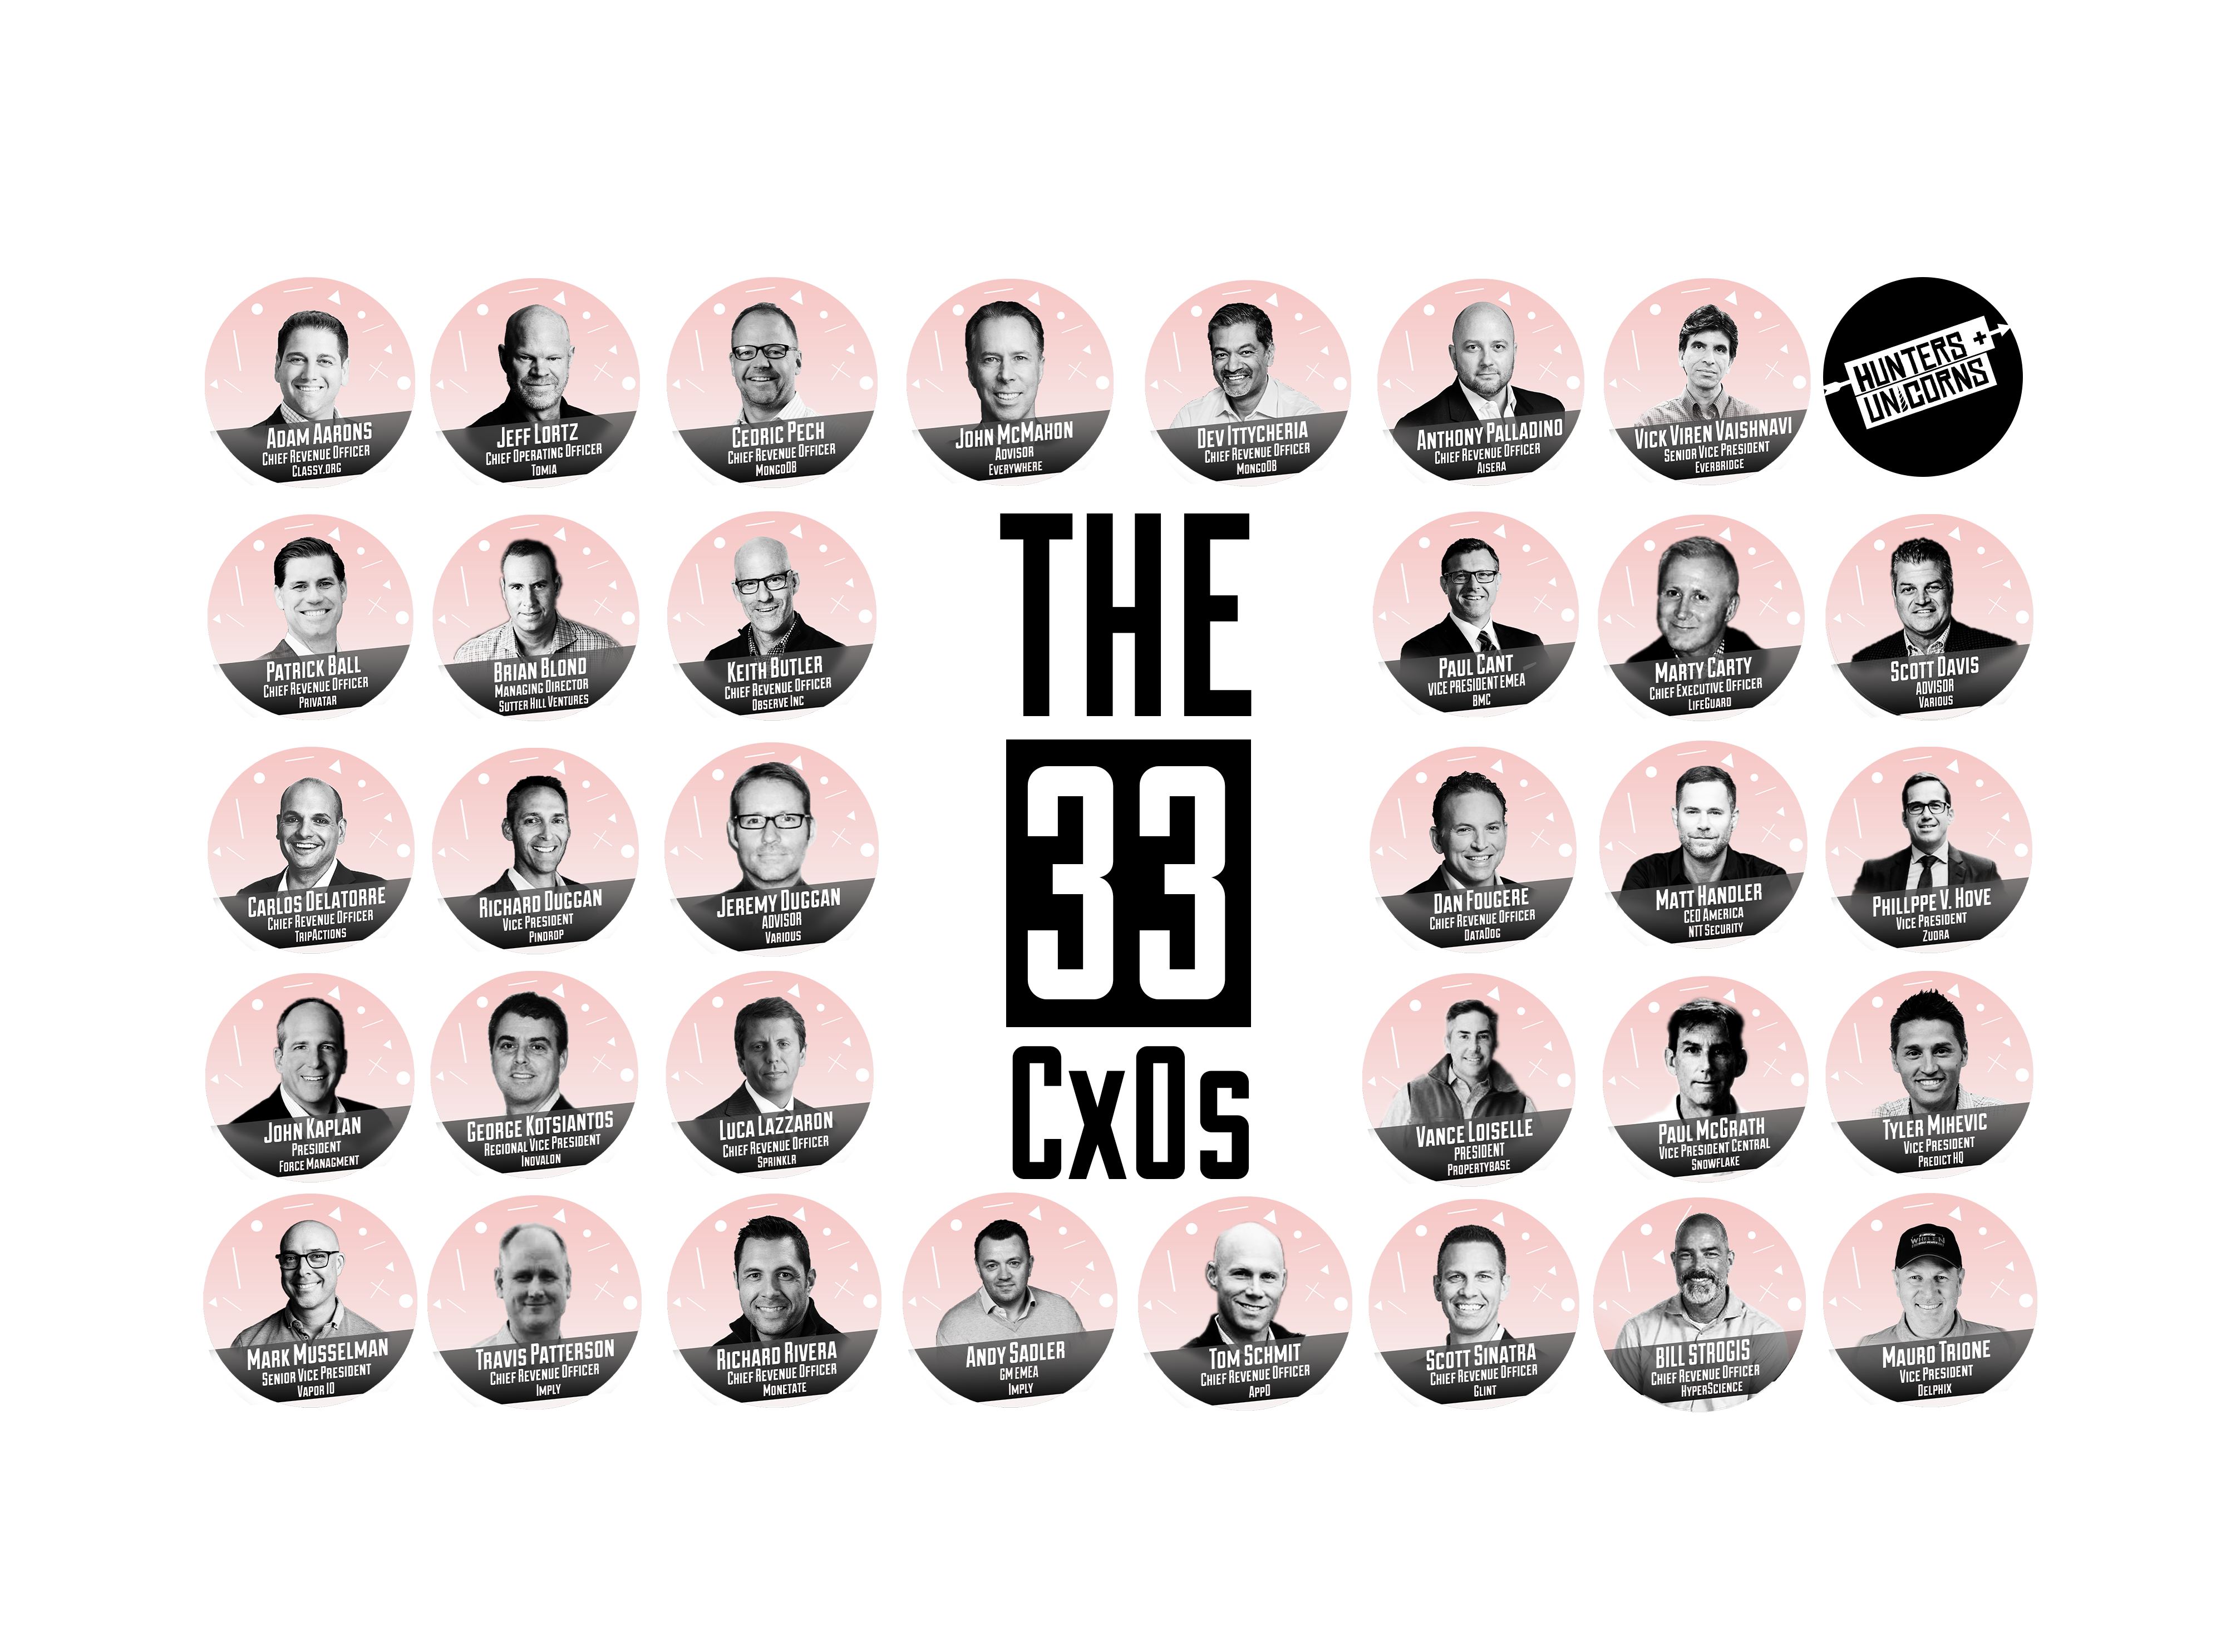 The 33 Chief Revenue Officers